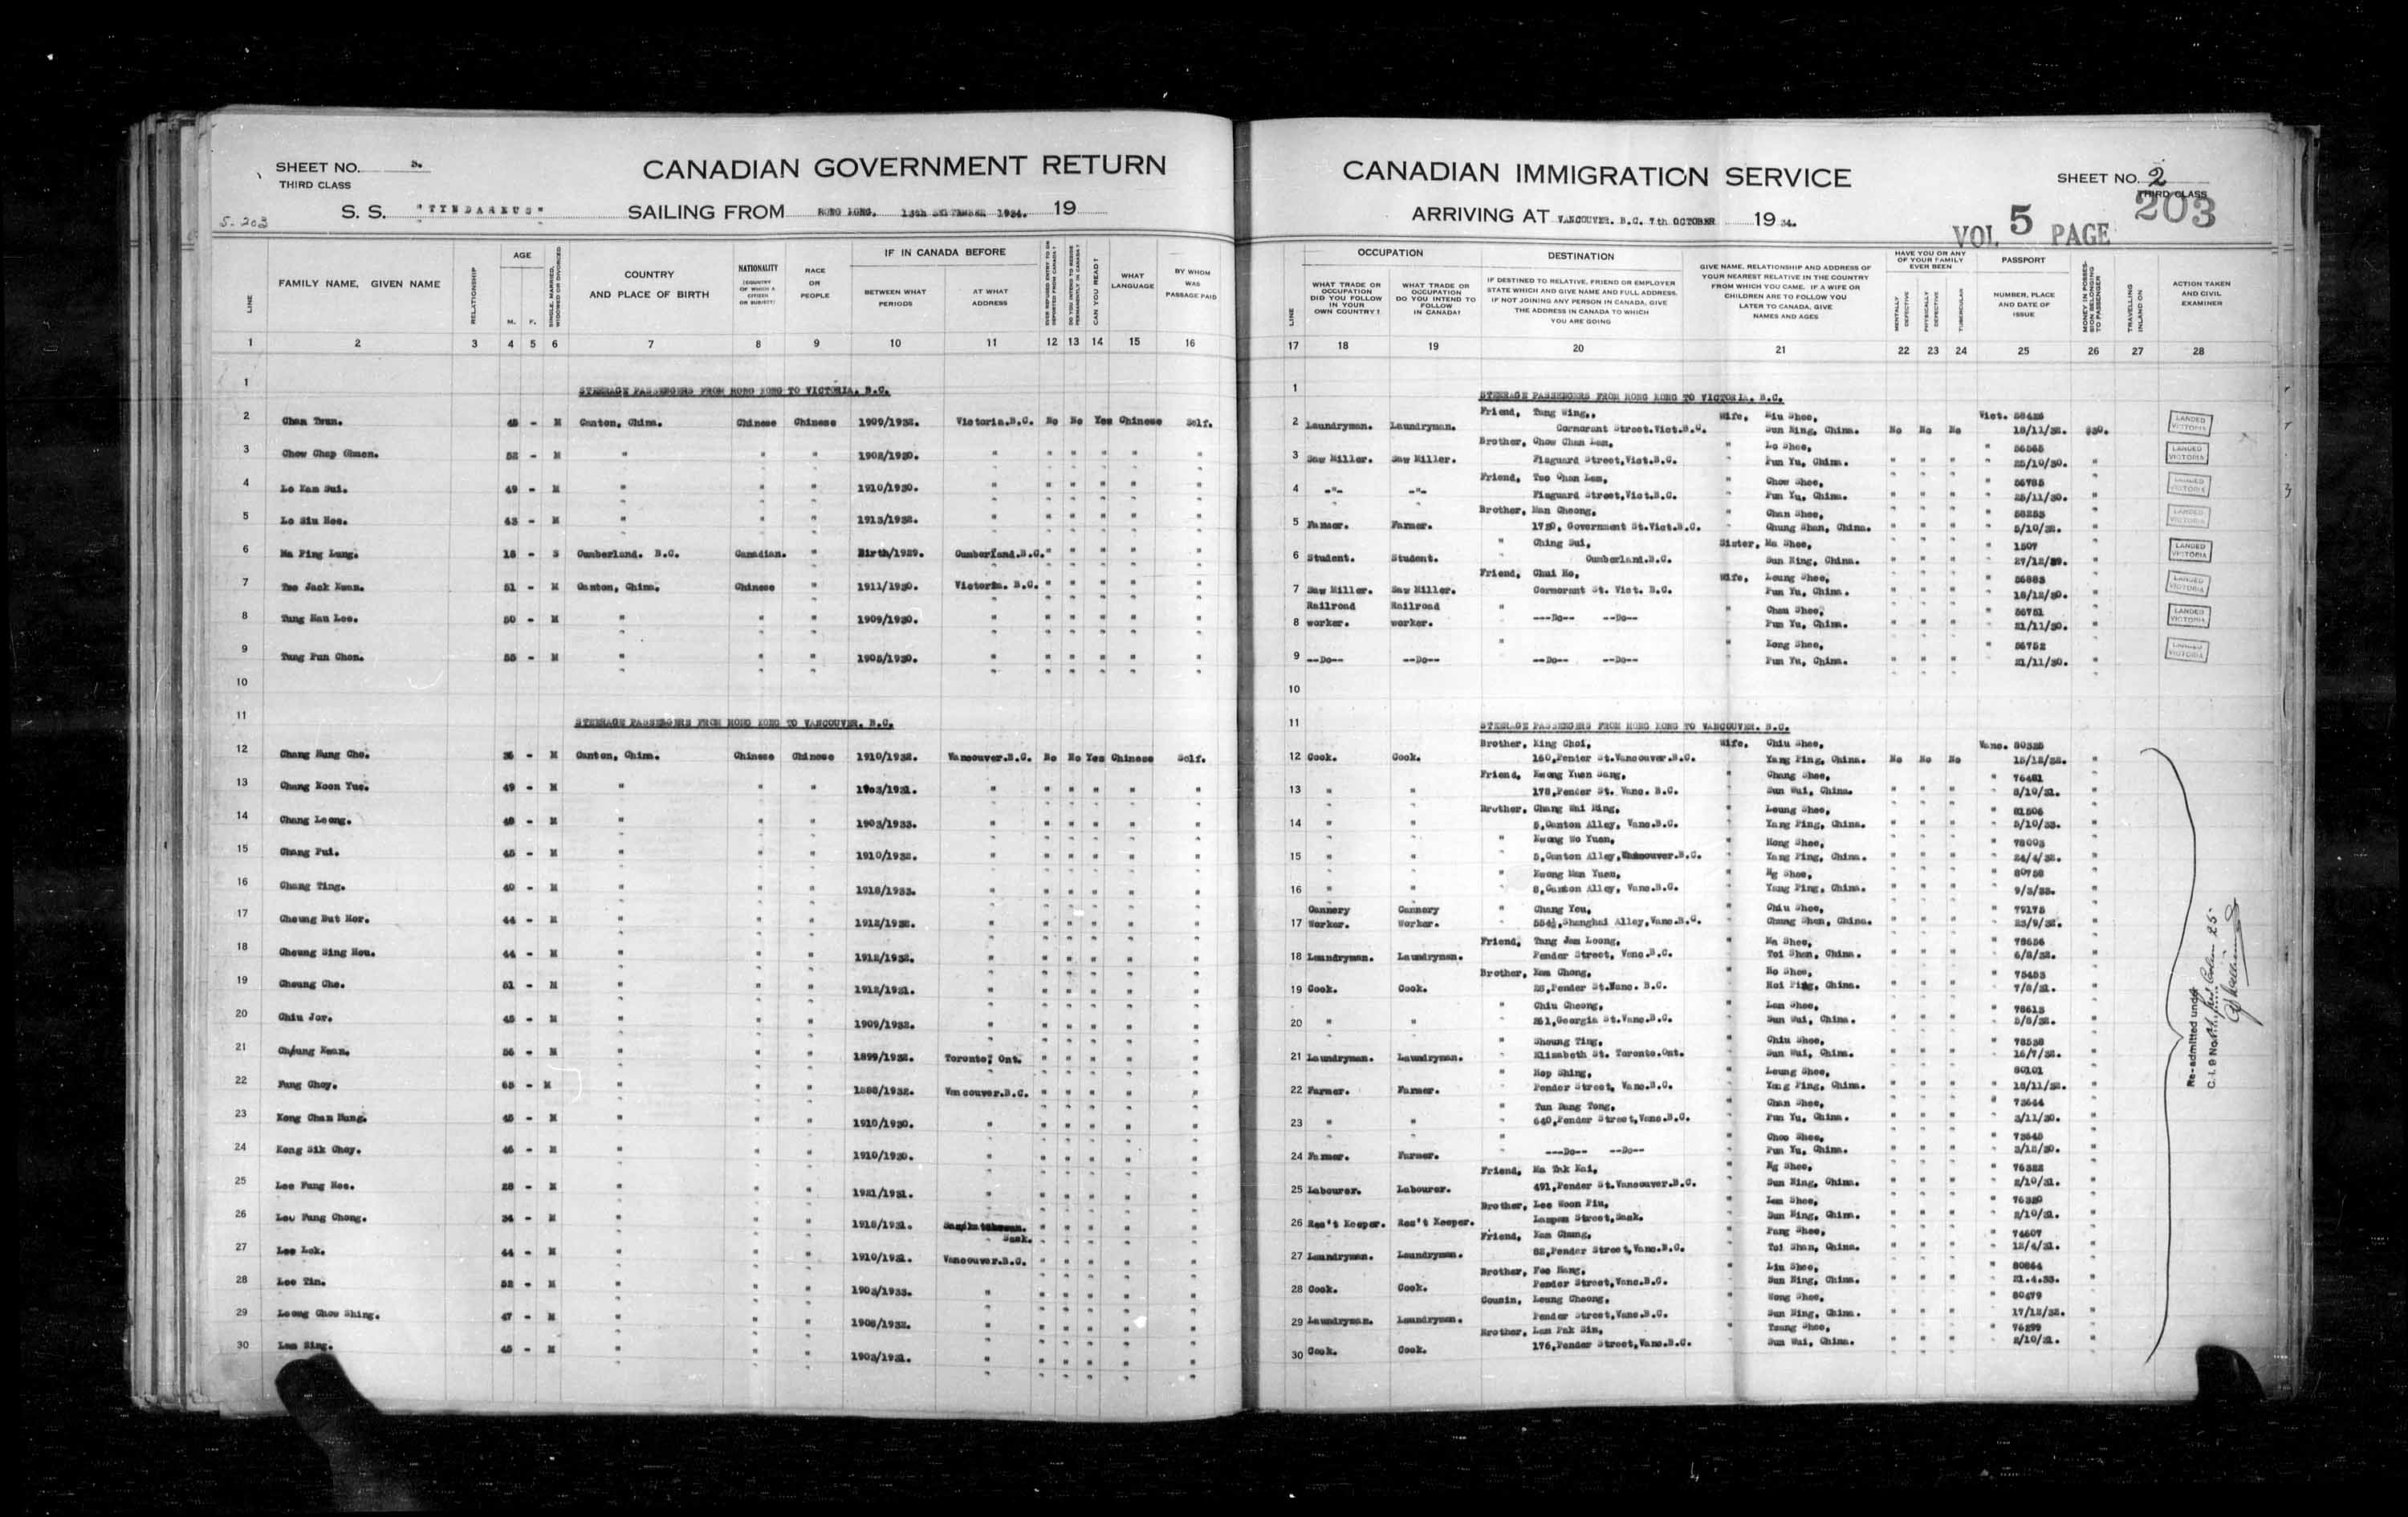 Title: Passenger Lists: Vancouver and Victoria (1925-1935) - Mikan Number: 161347 - Microform: t-14907